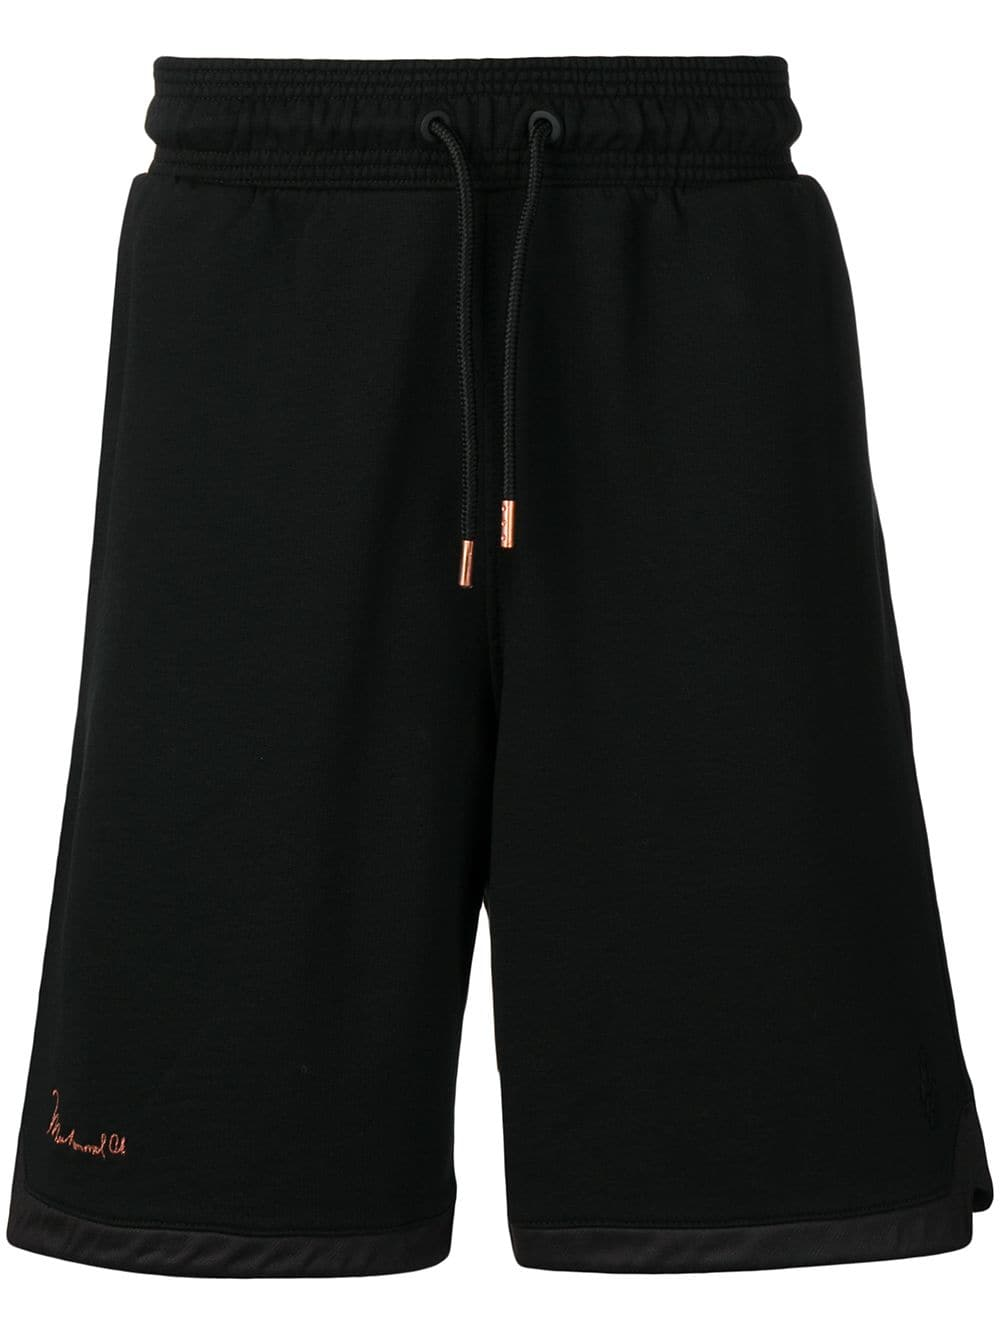 MARCELO BURLON COUNTY OF MILAN basic track shorts | MAISONDEFASHION.COM